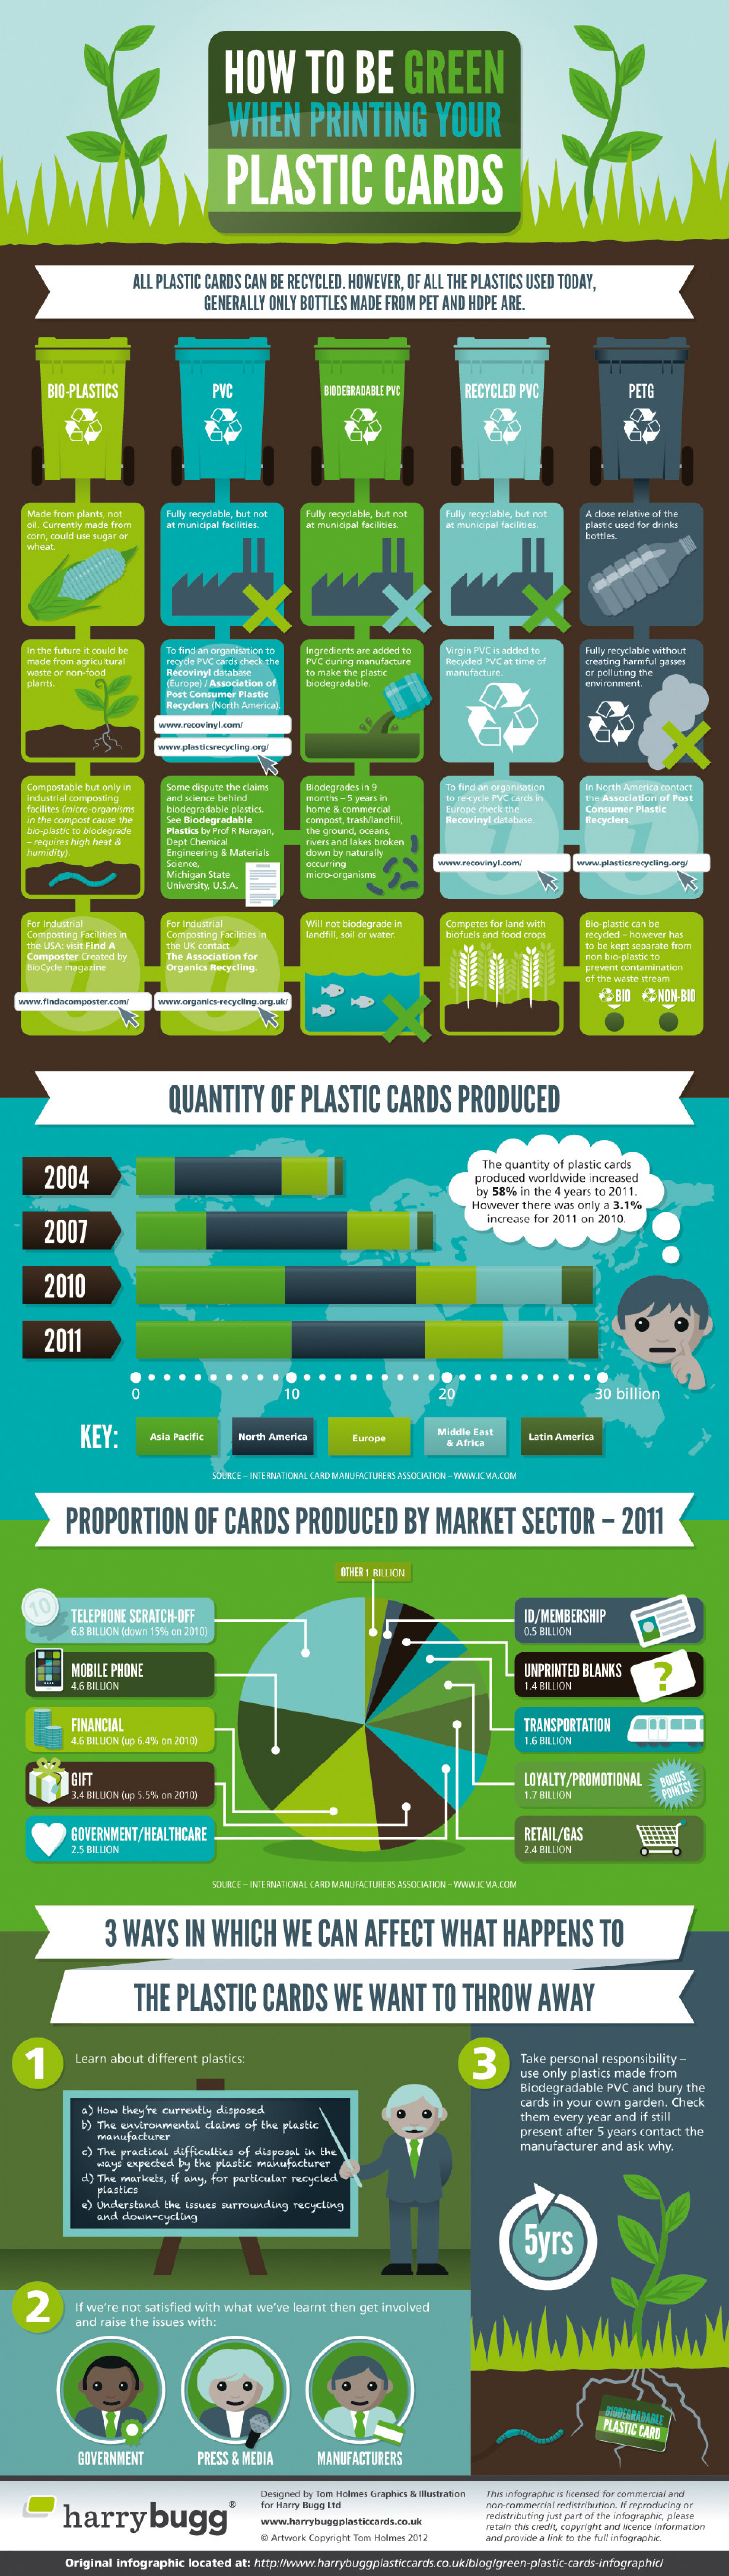 How to be green when printing your Plastic Cards Infographic